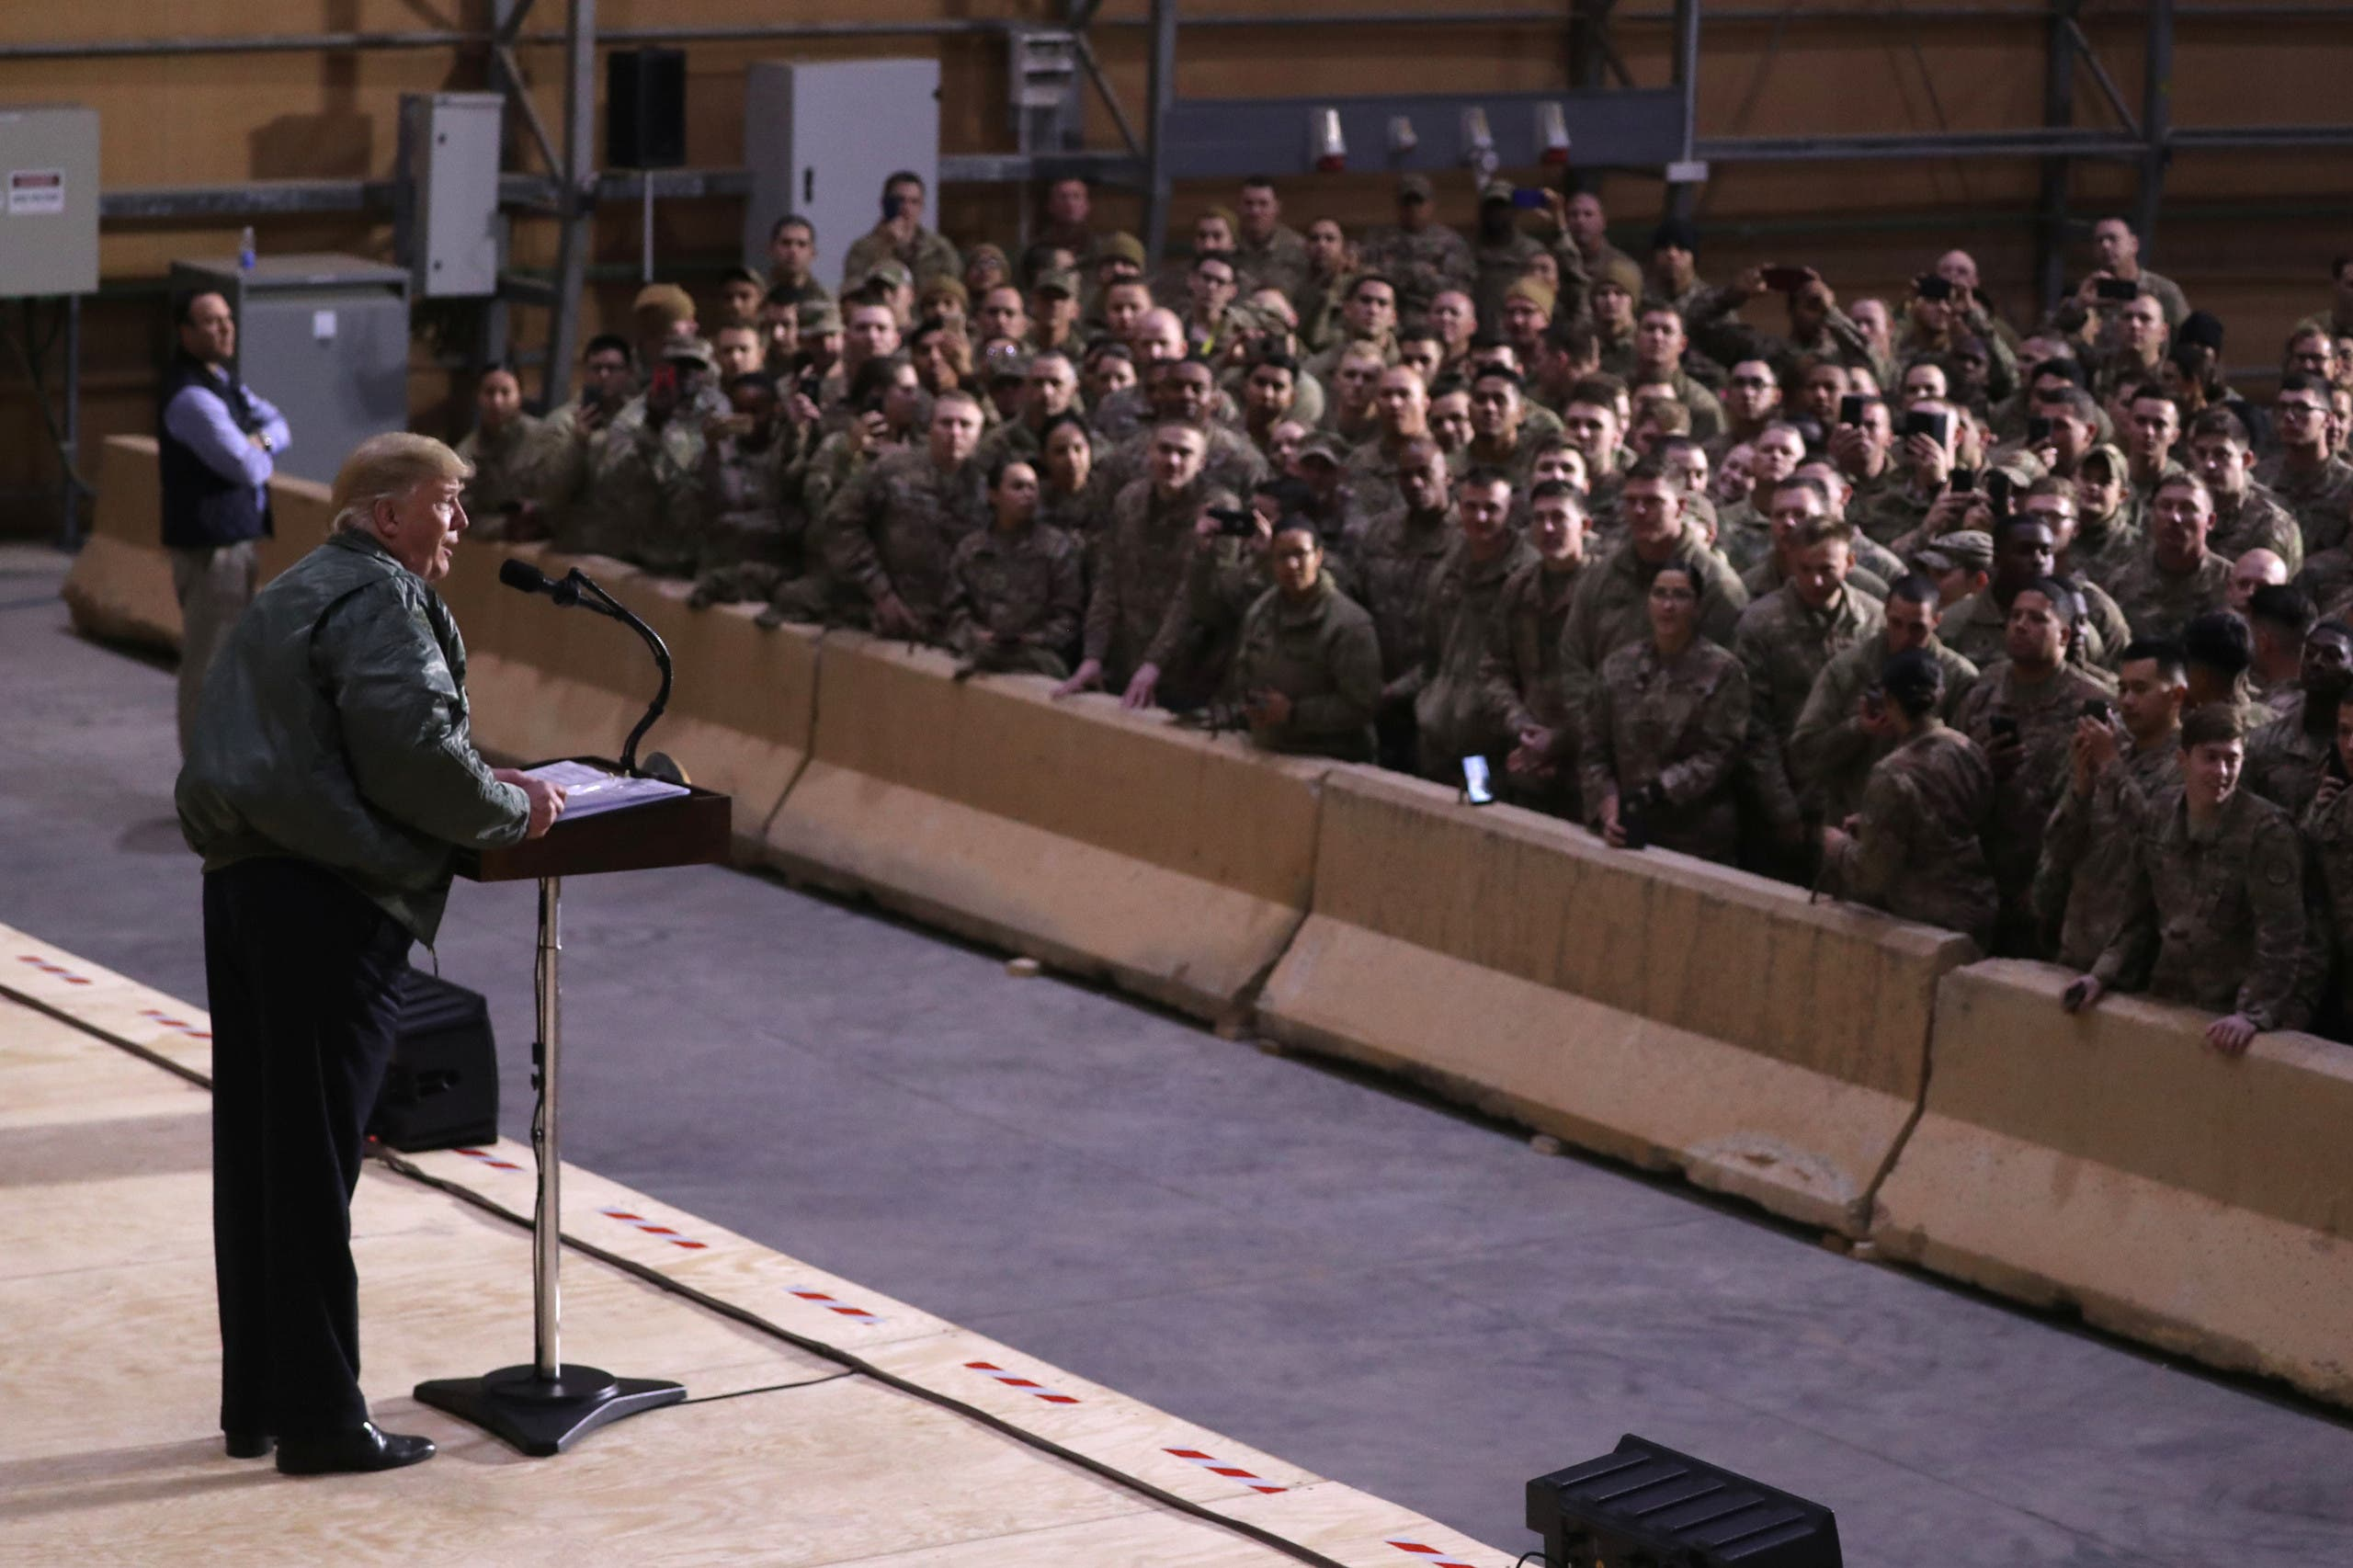 US President Donald Trump delivers remarks to US troops in an unannounced visit to Al Asad Air Base, Iraq December 26, 2018. (File photo: Reuters)